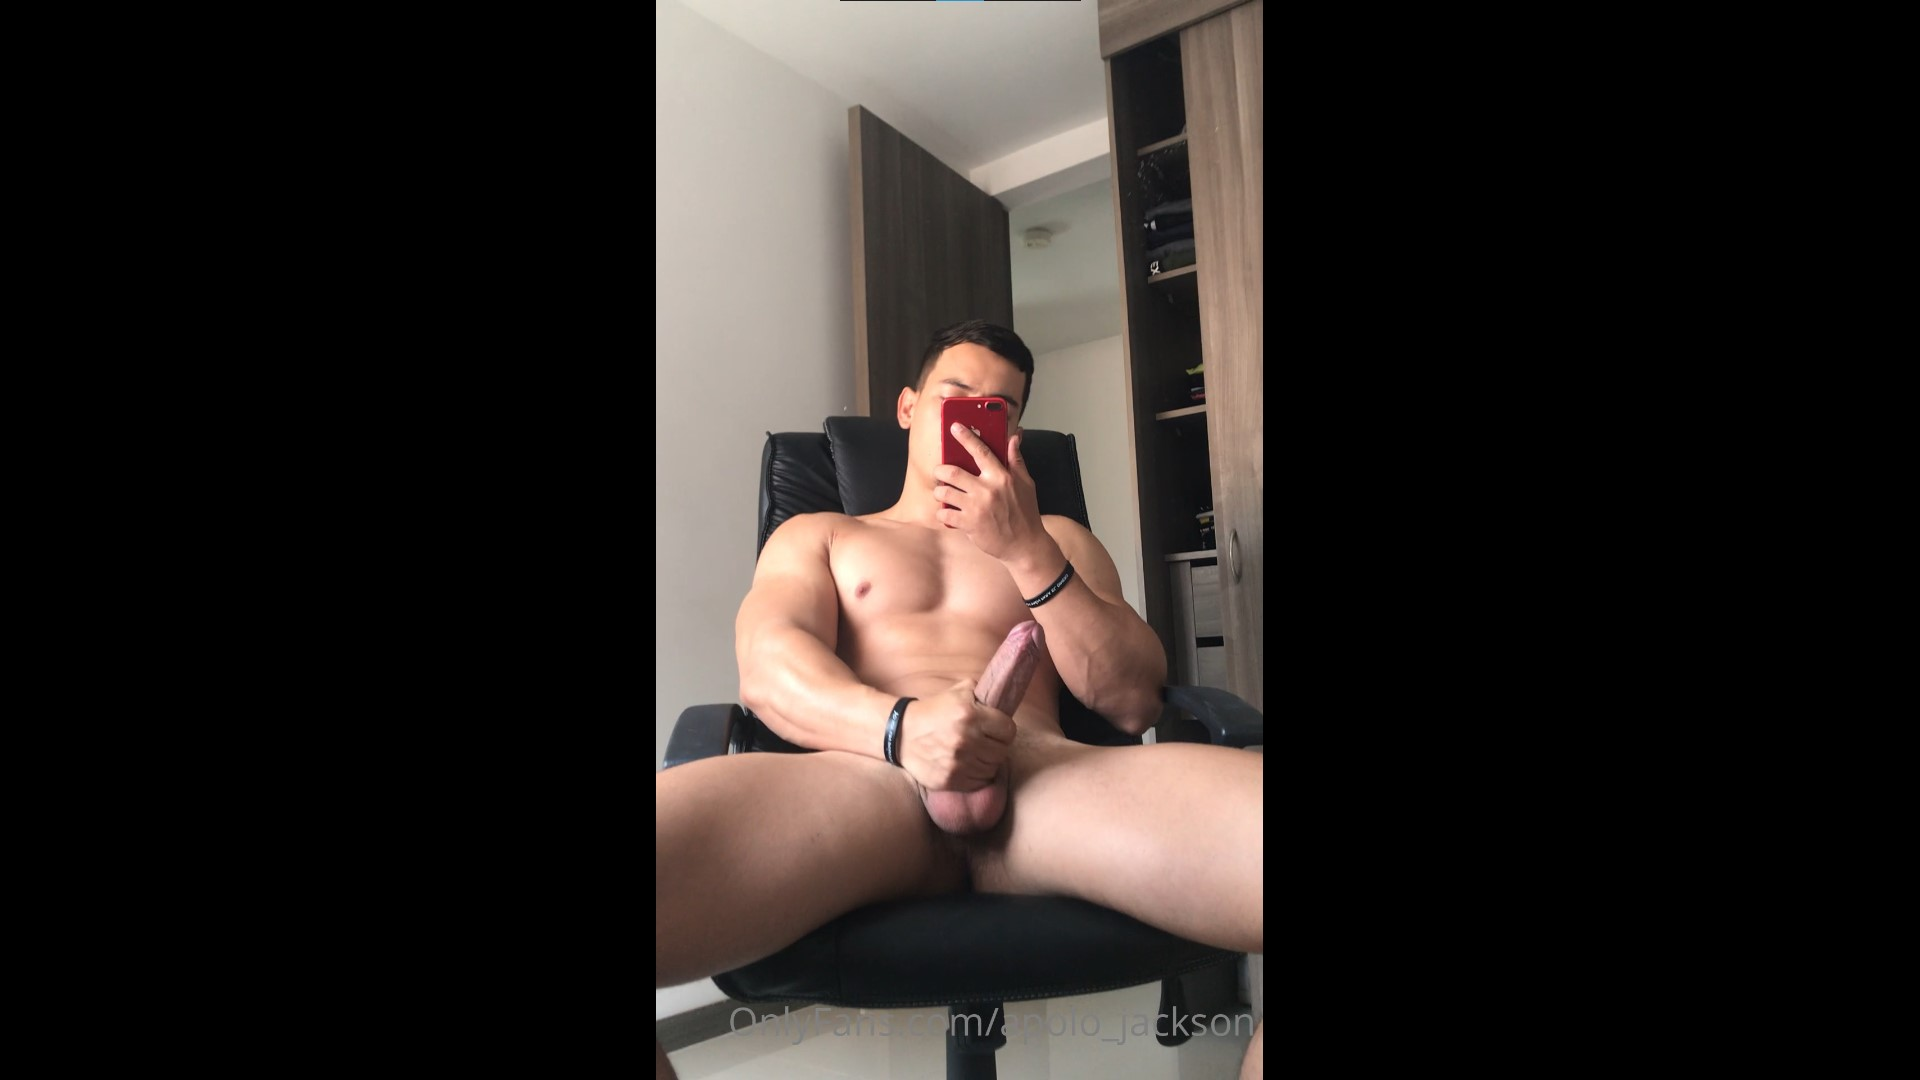 Jerking my cock and playing with my hole - apolo_jackson